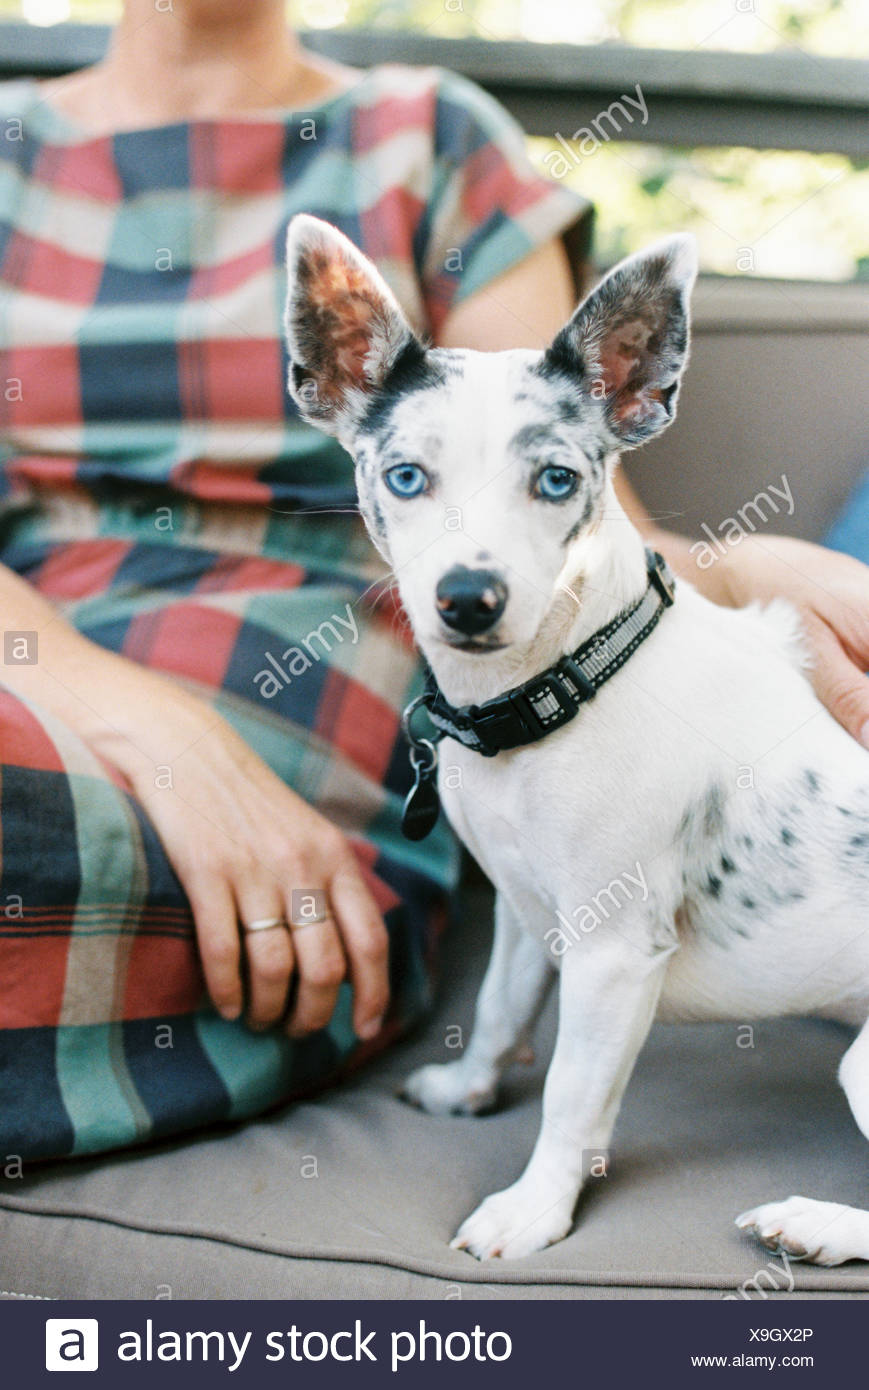 Magnificent A Man And A Small Dog With Large Ears Seated On A Bench Frankydiablos Diy Chair Ideas Frankydiabloscom